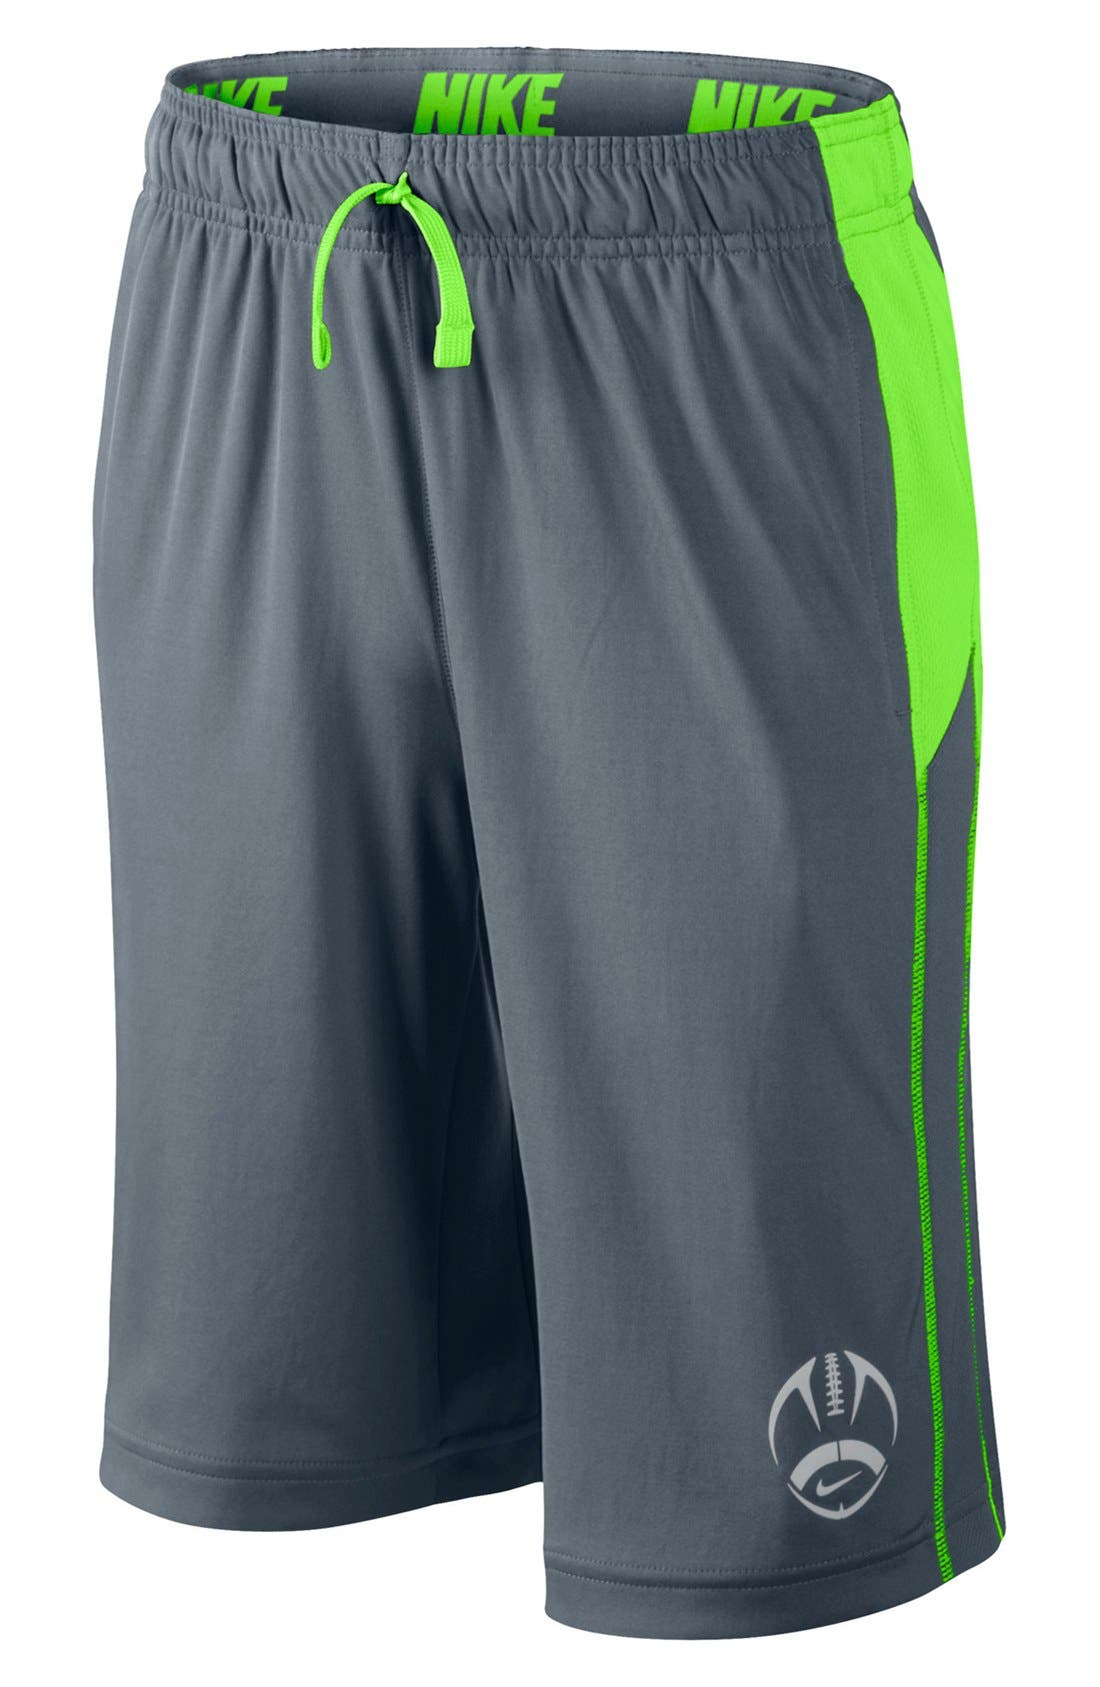 Alternate Image 1 Selected - Nike 'Field Sport' Shorts (Big Boys)